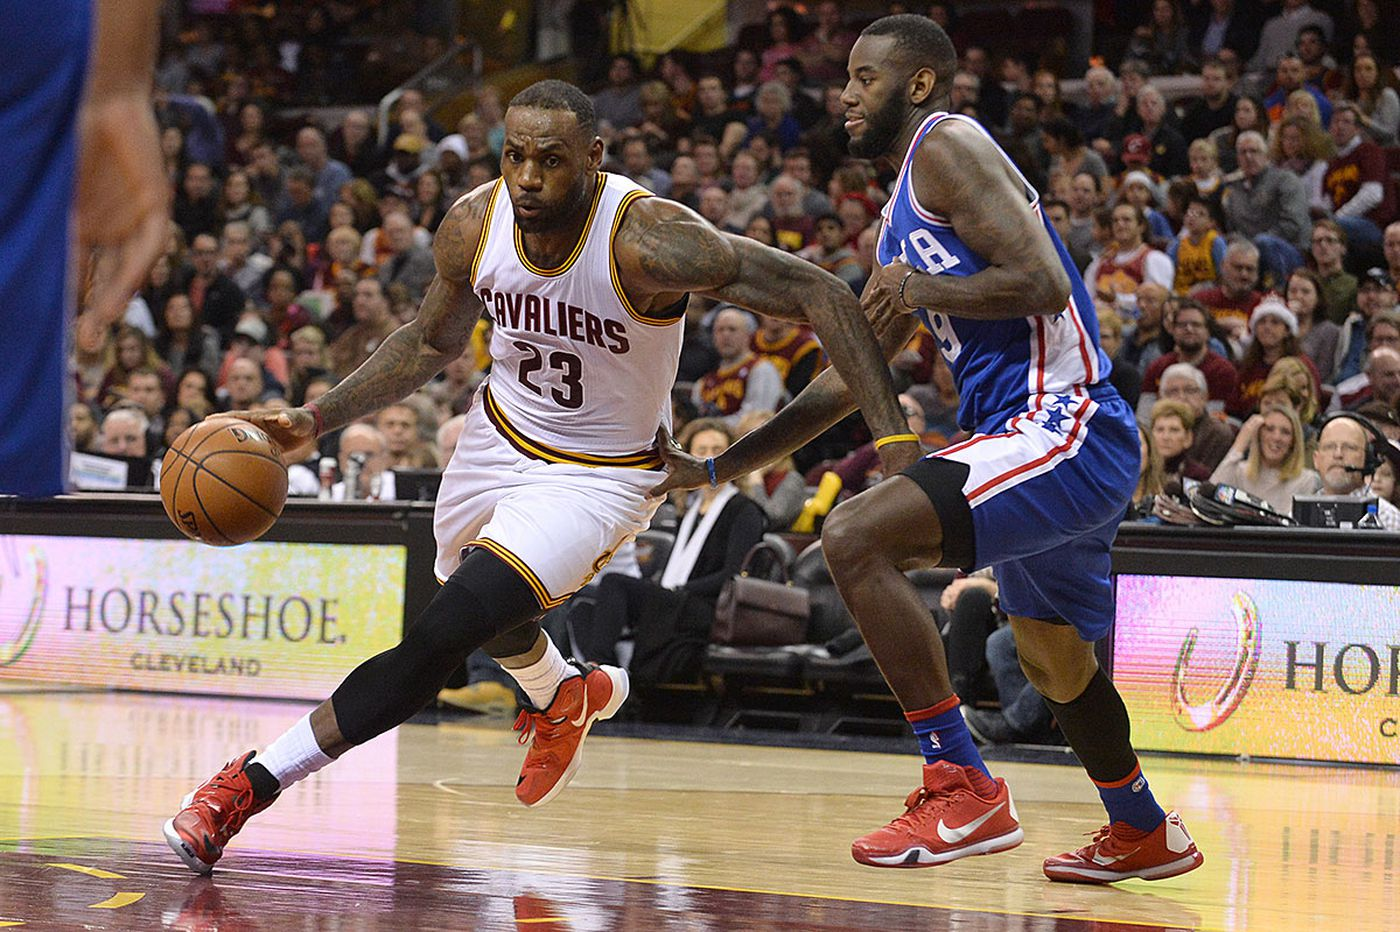 Cavs hand Sixers latest blowout loss